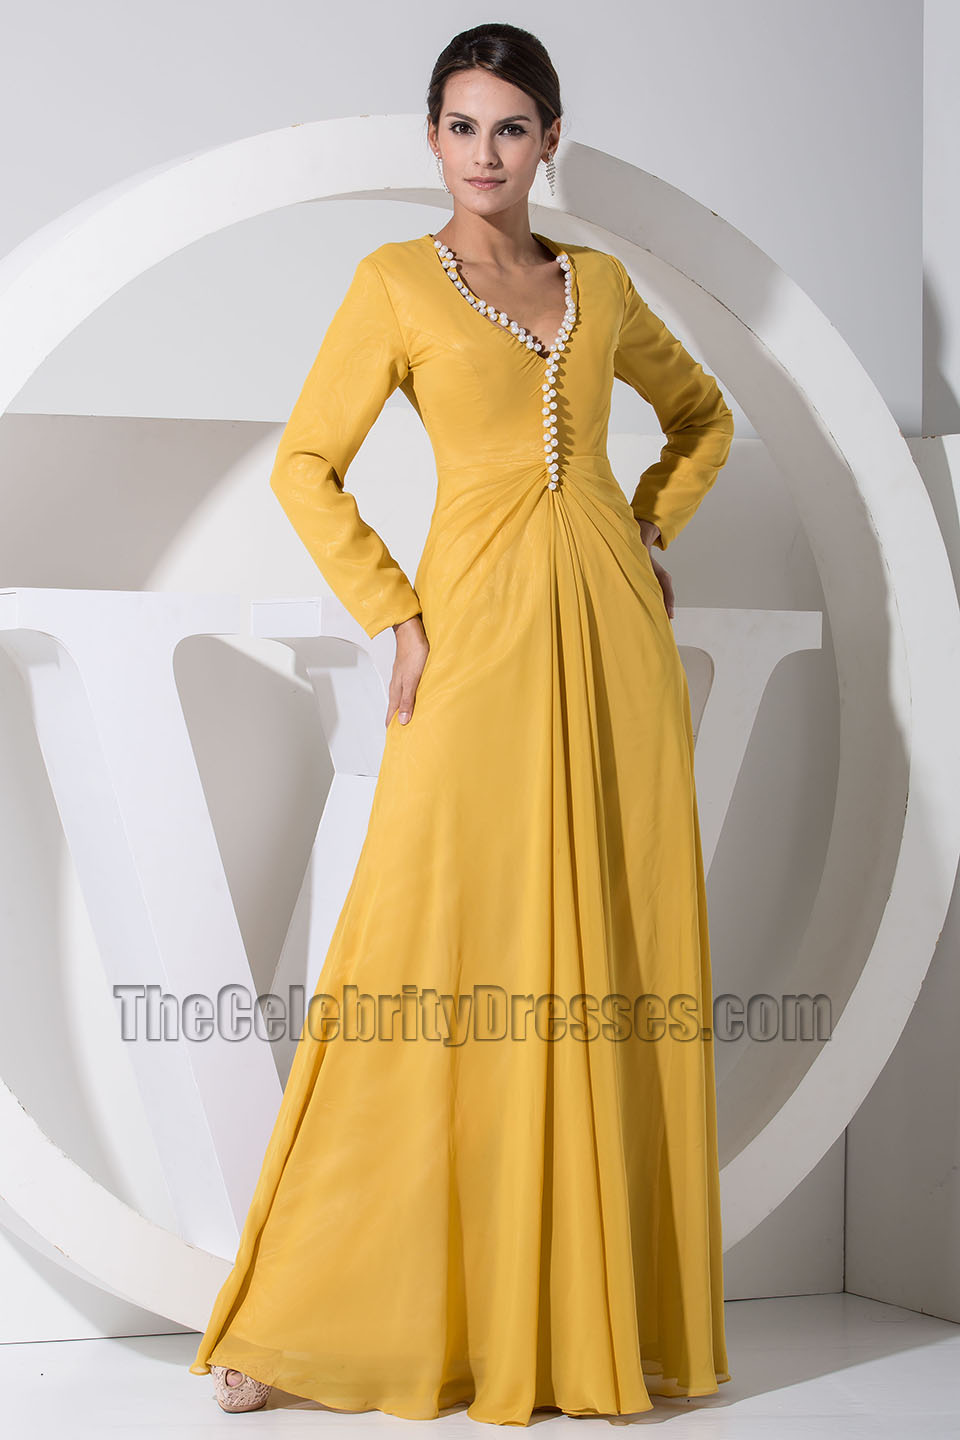 3b10563d7ab3 Gorgeous Yellow Long Sleeve Prom Dress Formal Evening Dresses ...